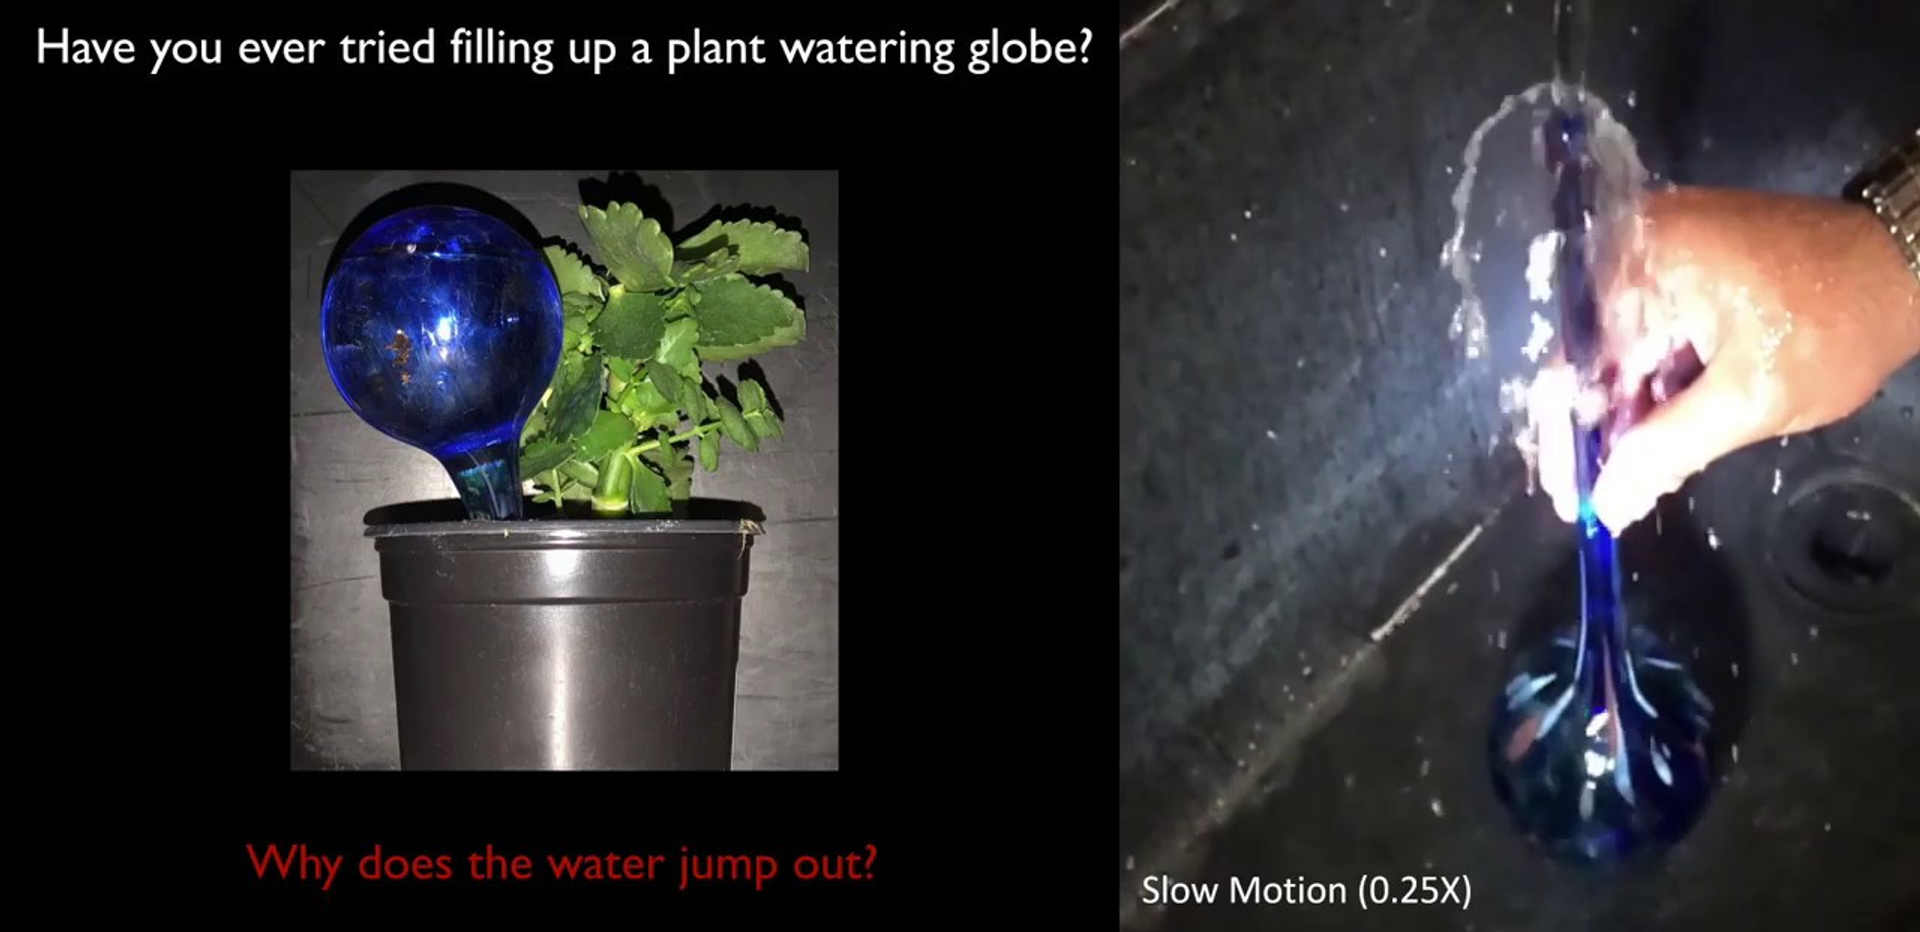 Jack in the Bottle: How fluids jump out of a globe